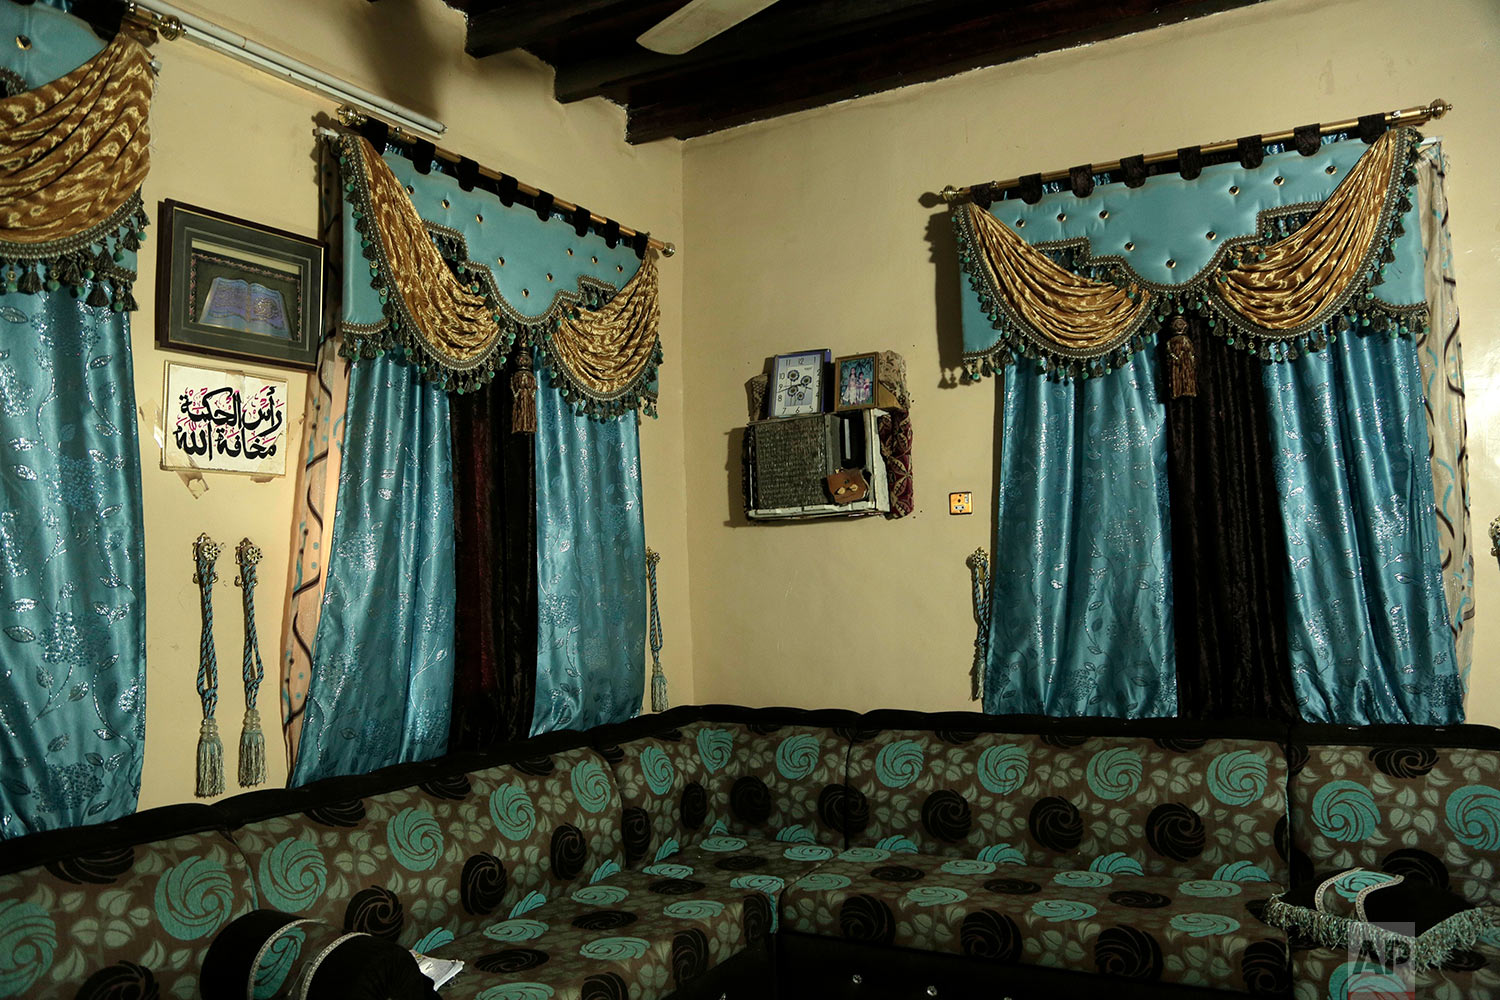 The interior of a home in Mocha, Yemen. (AP Photo/Nariman El-Mofty)